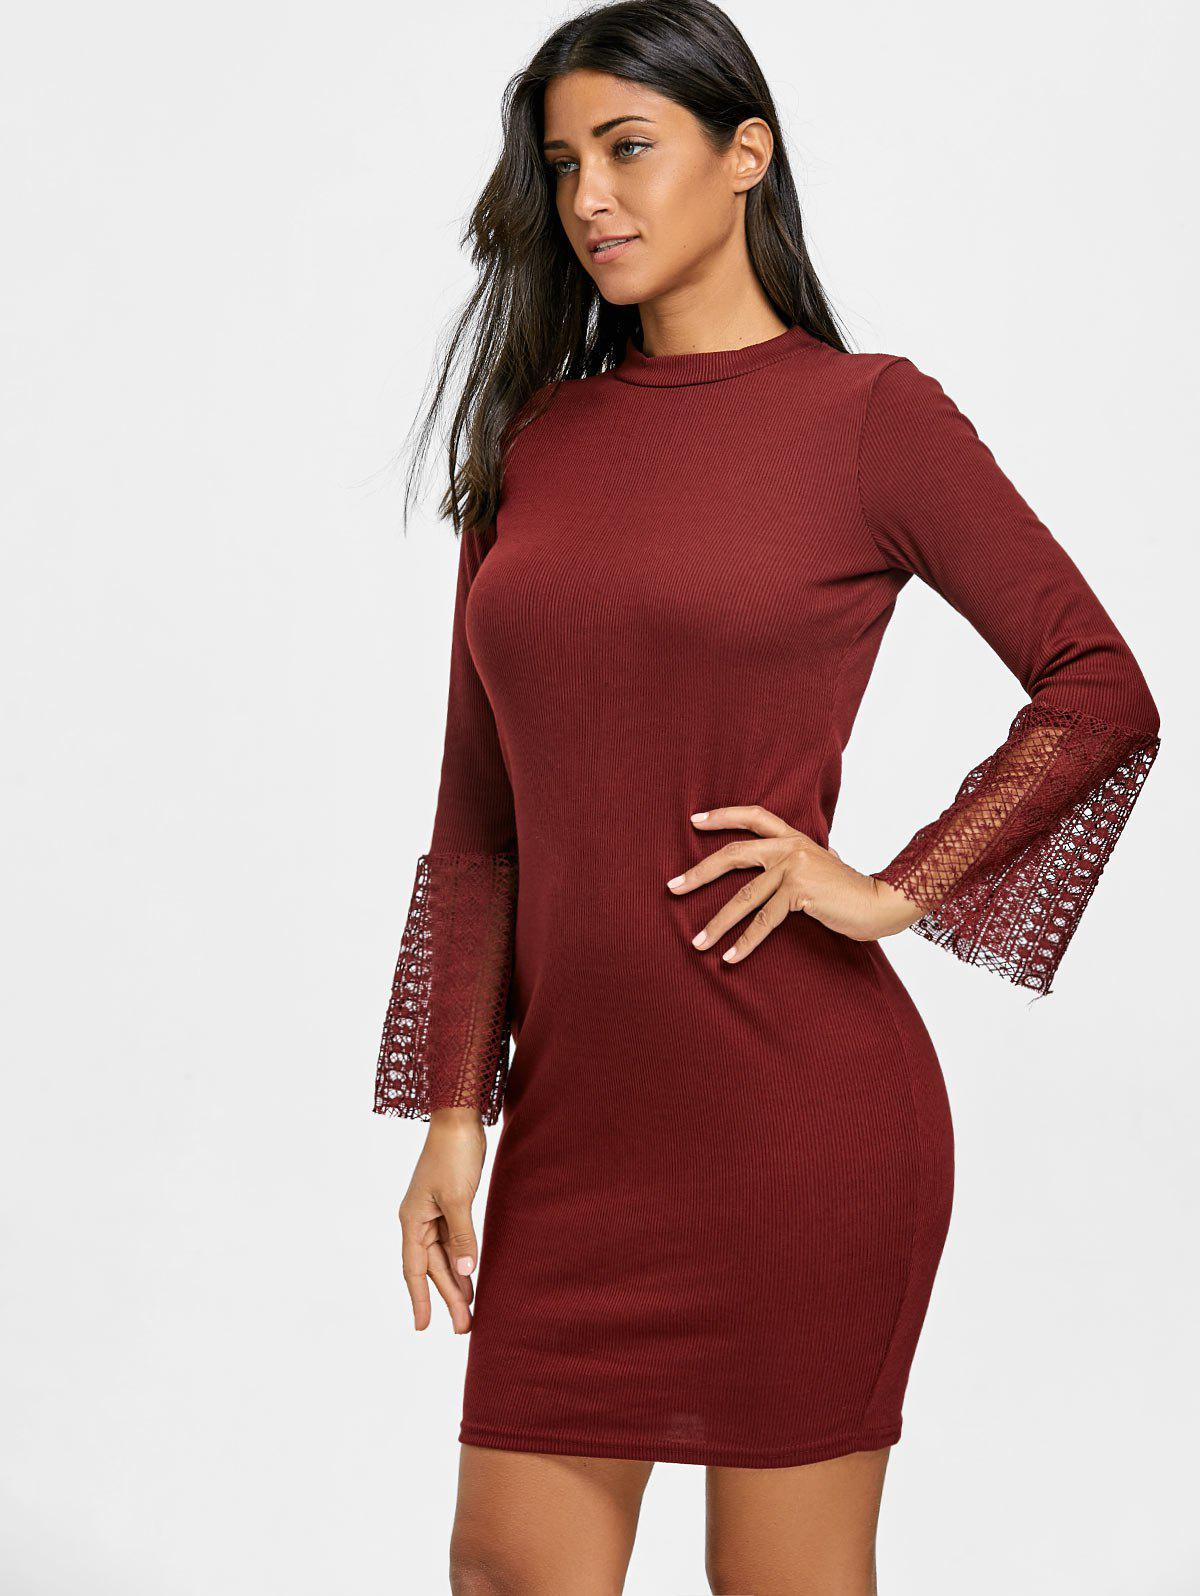 Lace Insert Knitted Bodycon Dress - WINE RED L